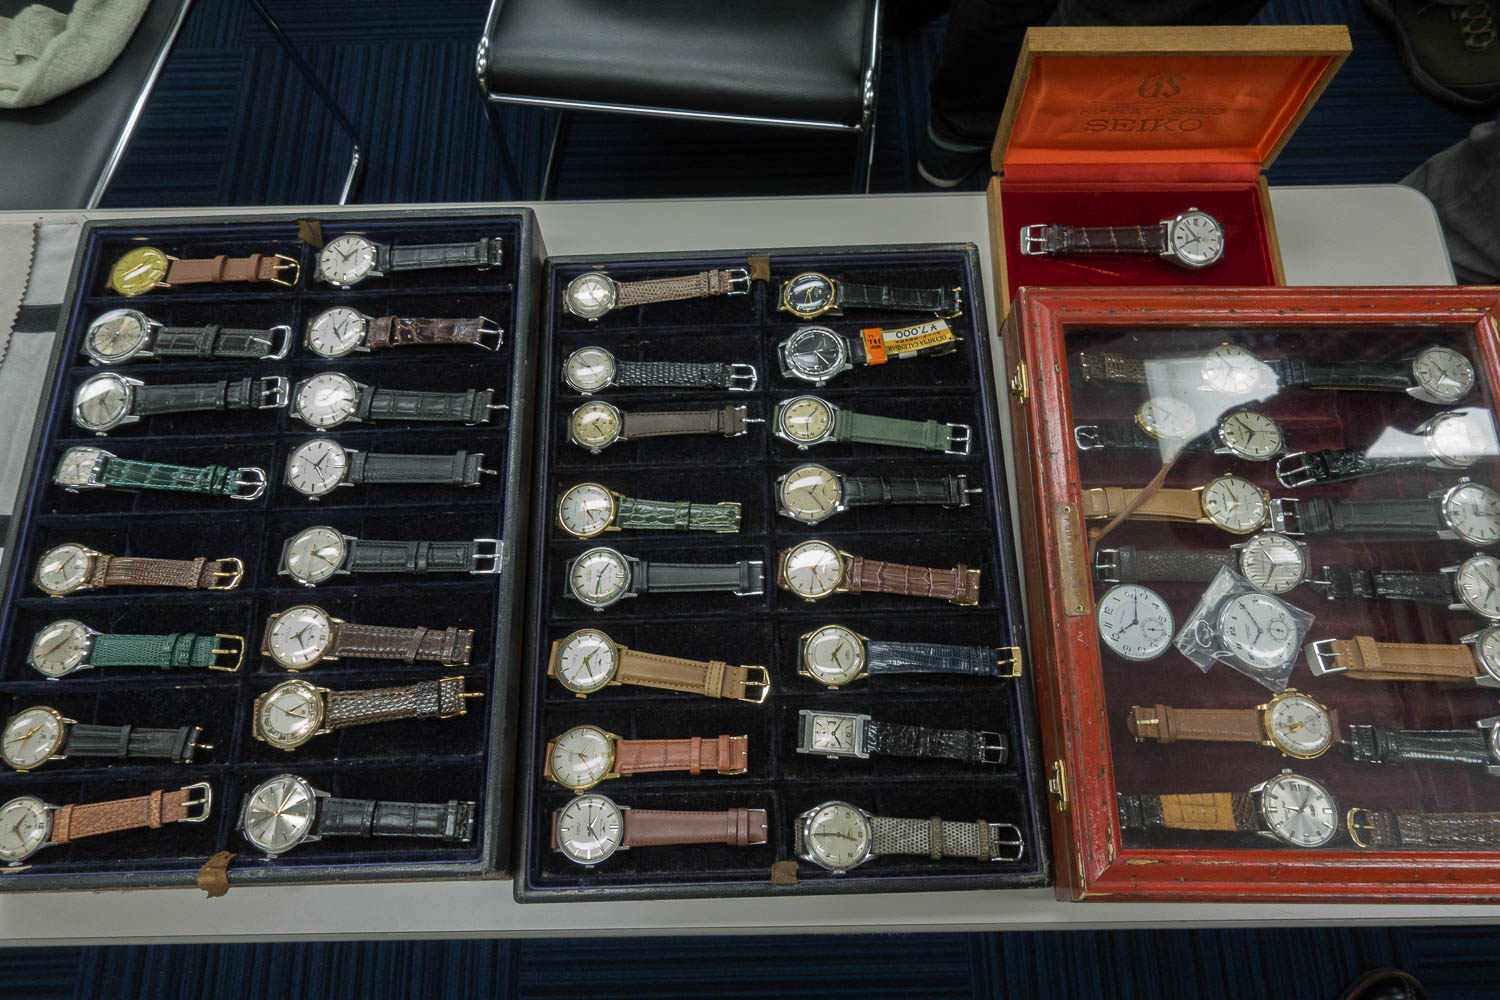 Wide range of watches